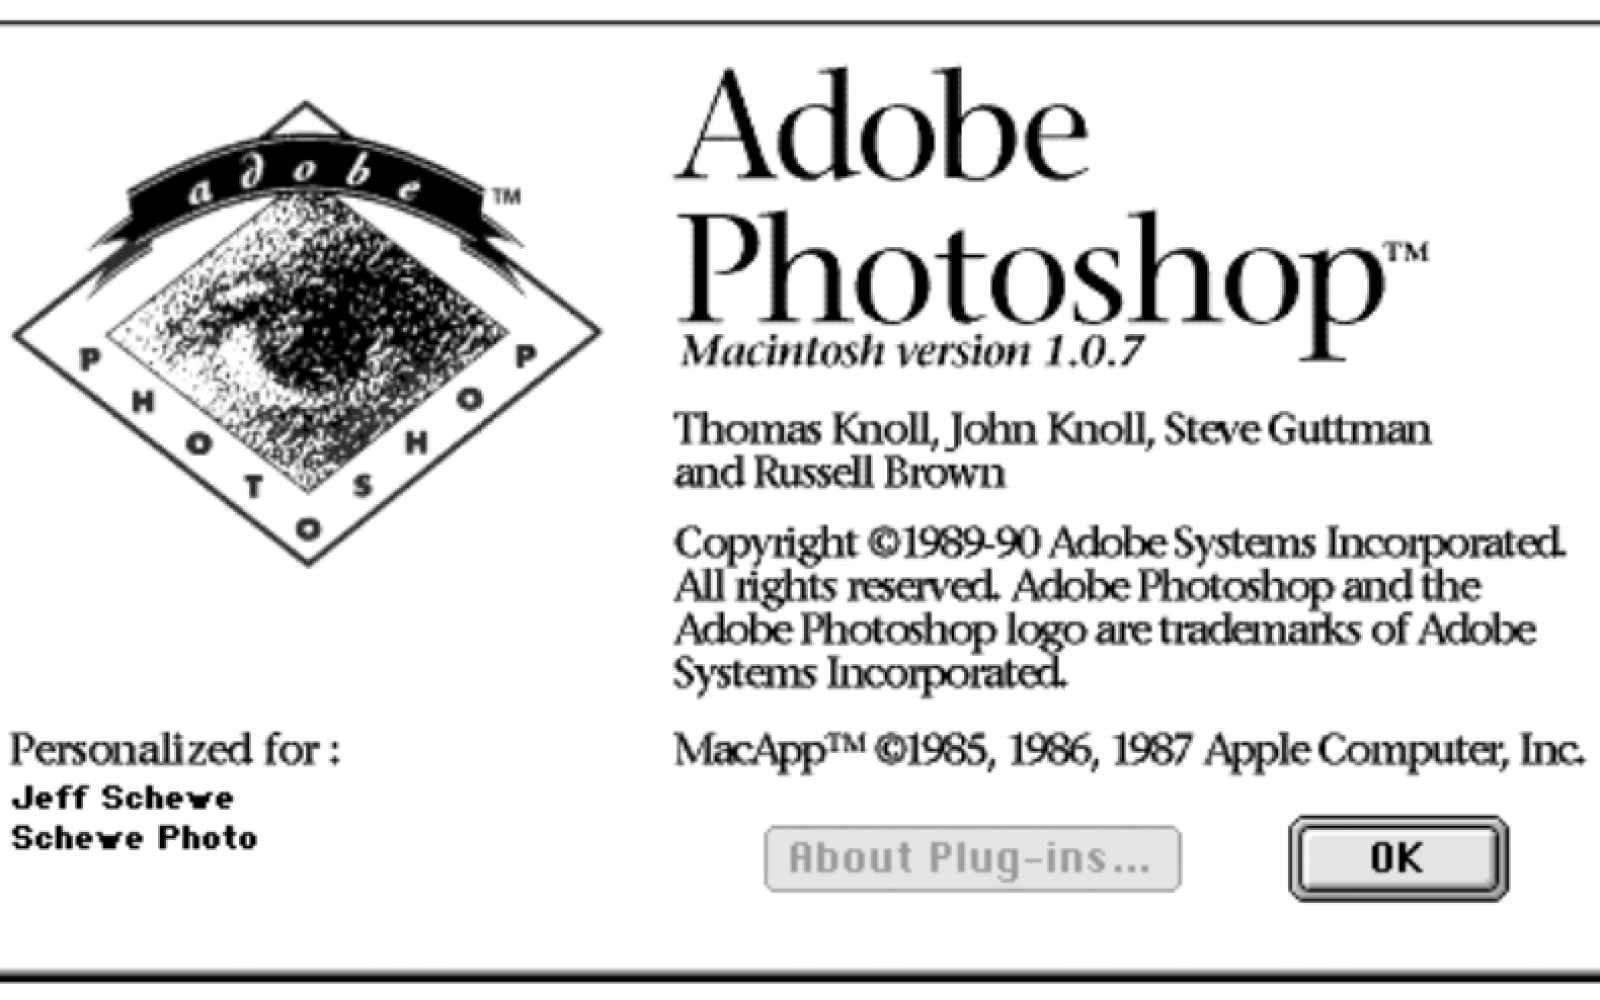 Photoshop celebrates 25th anniversary today of app originally created on a Macintosh Plus